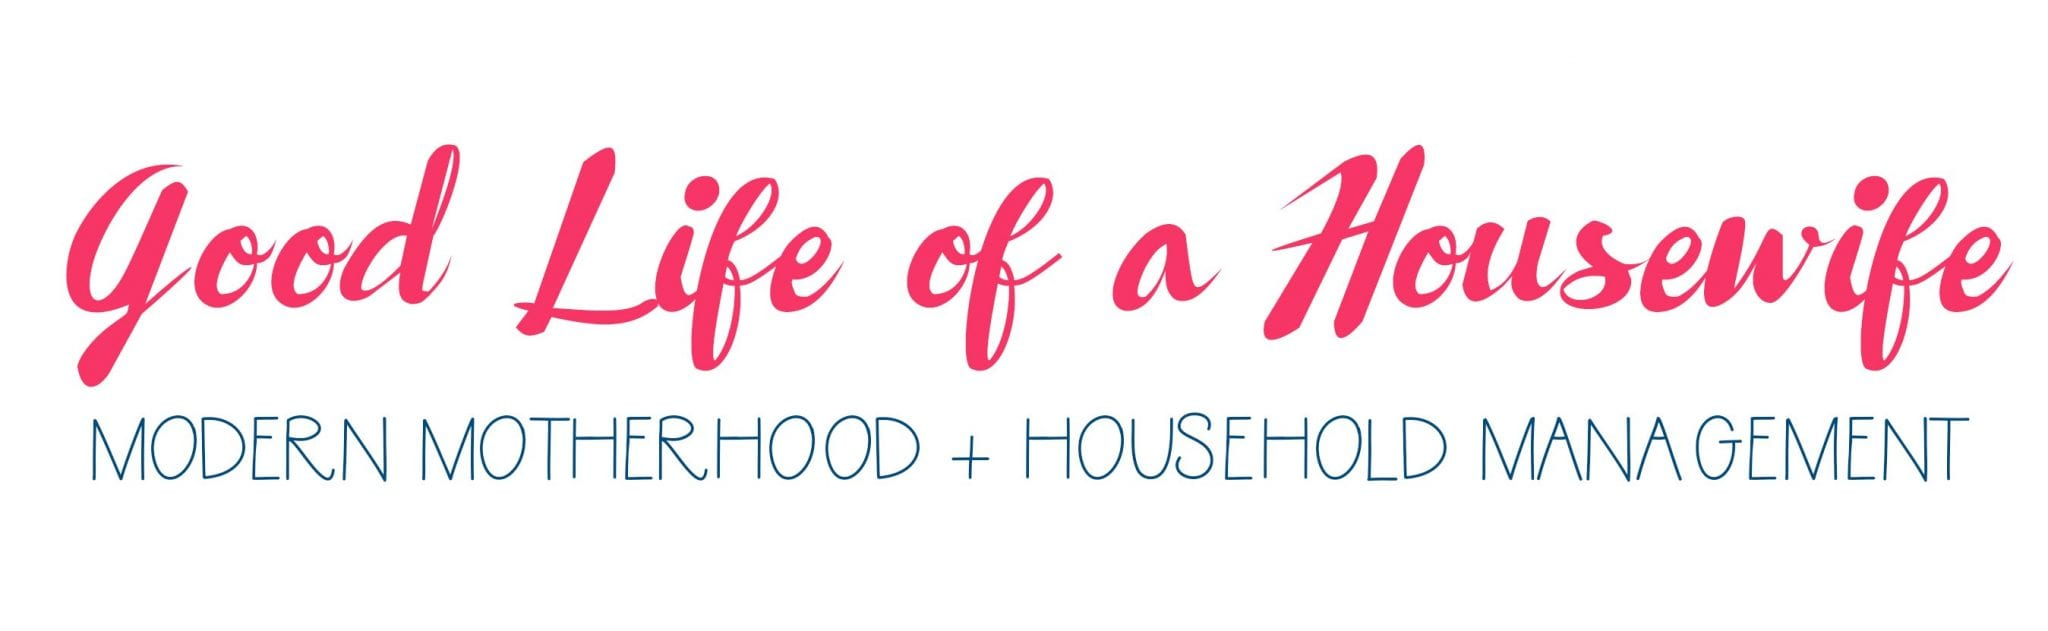 Good Life of a Housewife | Modern Motherhood + Household Management